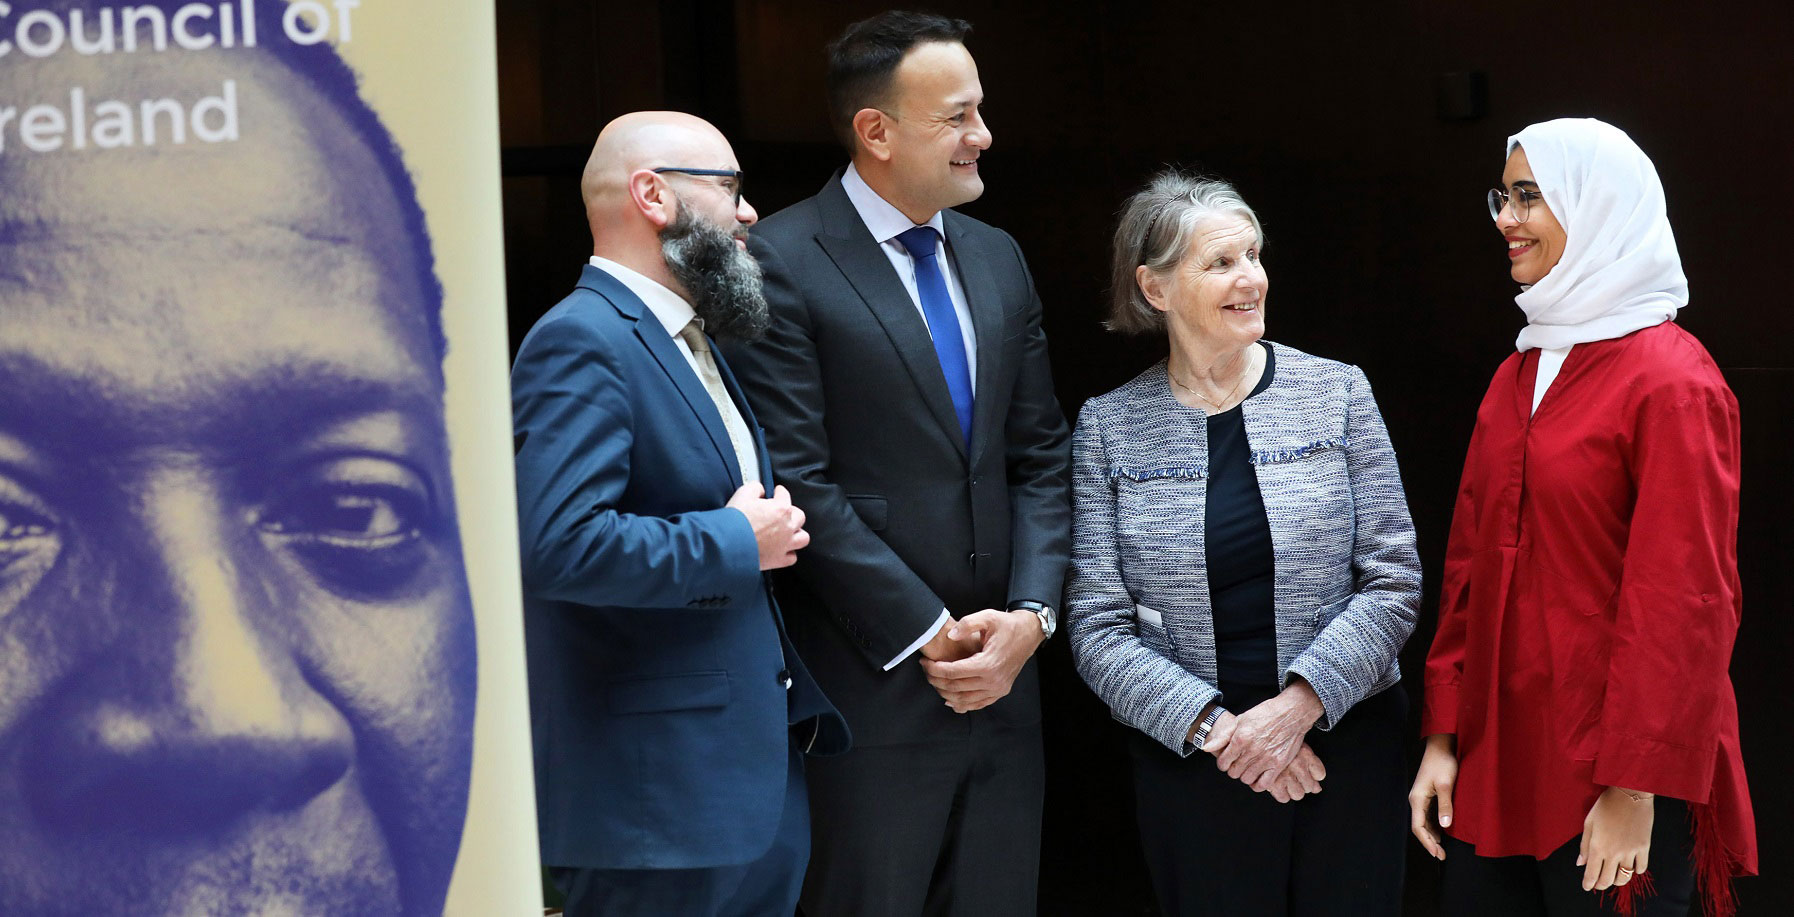 Immigrant Council CEO Brian Killoran and Sr Stan Kennedy speaking with Leo Varadkar and Raneem at 2019 conference